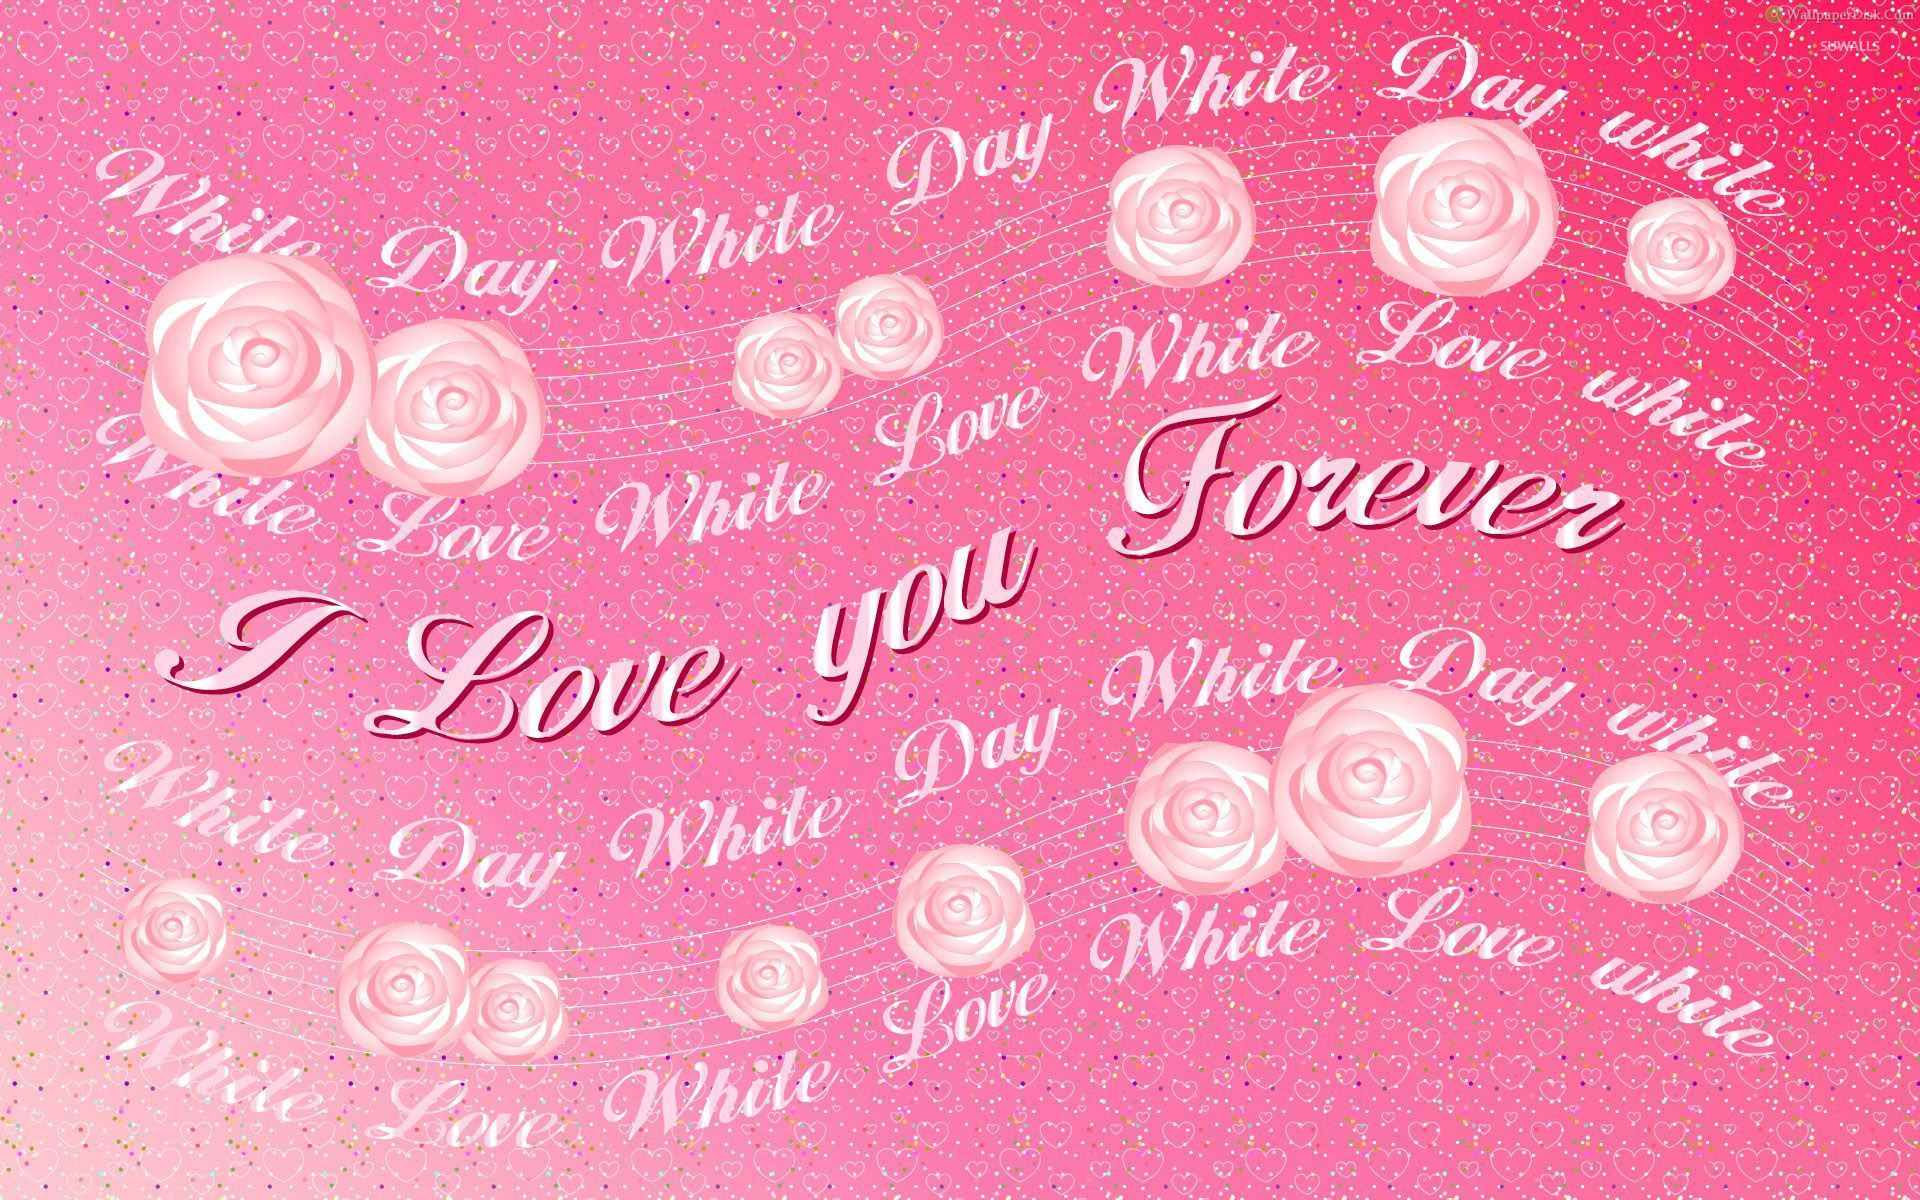 Wallpaper Love U Forever : I love you forever wallpaper - Holiday wallpapers - #51343